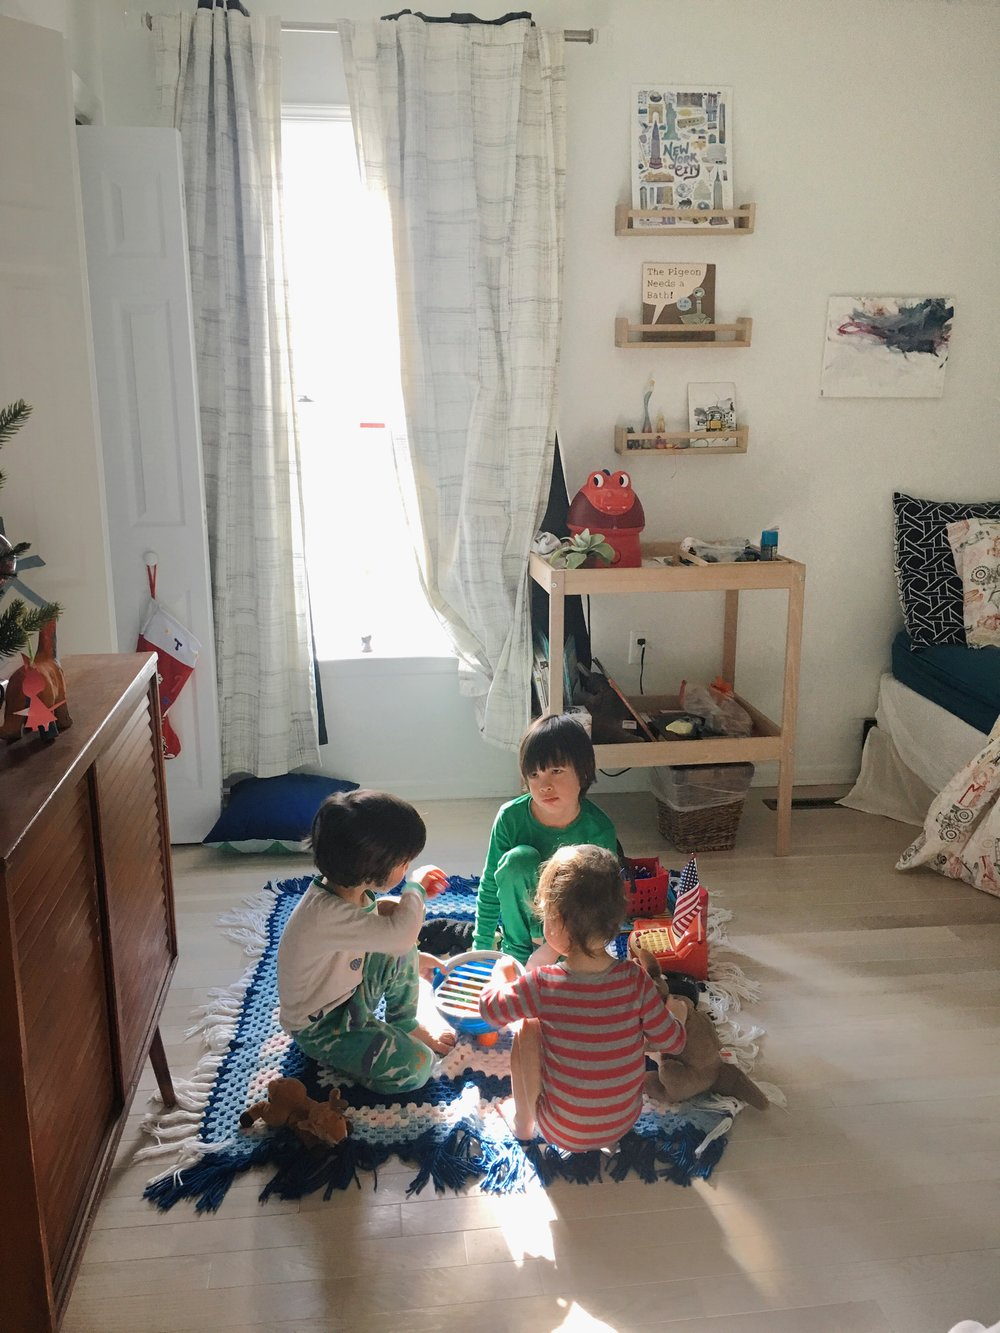 """10:36 a.m. - Kids are playing bank. Or is it bank robber? I don't know, there's something about lockdowns going on in there. I peek in quickly to make sure all is well, and I see Max has tagged up his little brothers with nametags that say """"I am Rowan I work at the bank"""". Atticus has an extra nametag that reads """"Best #1""""… I guess he's been made Employee of the Month?"""